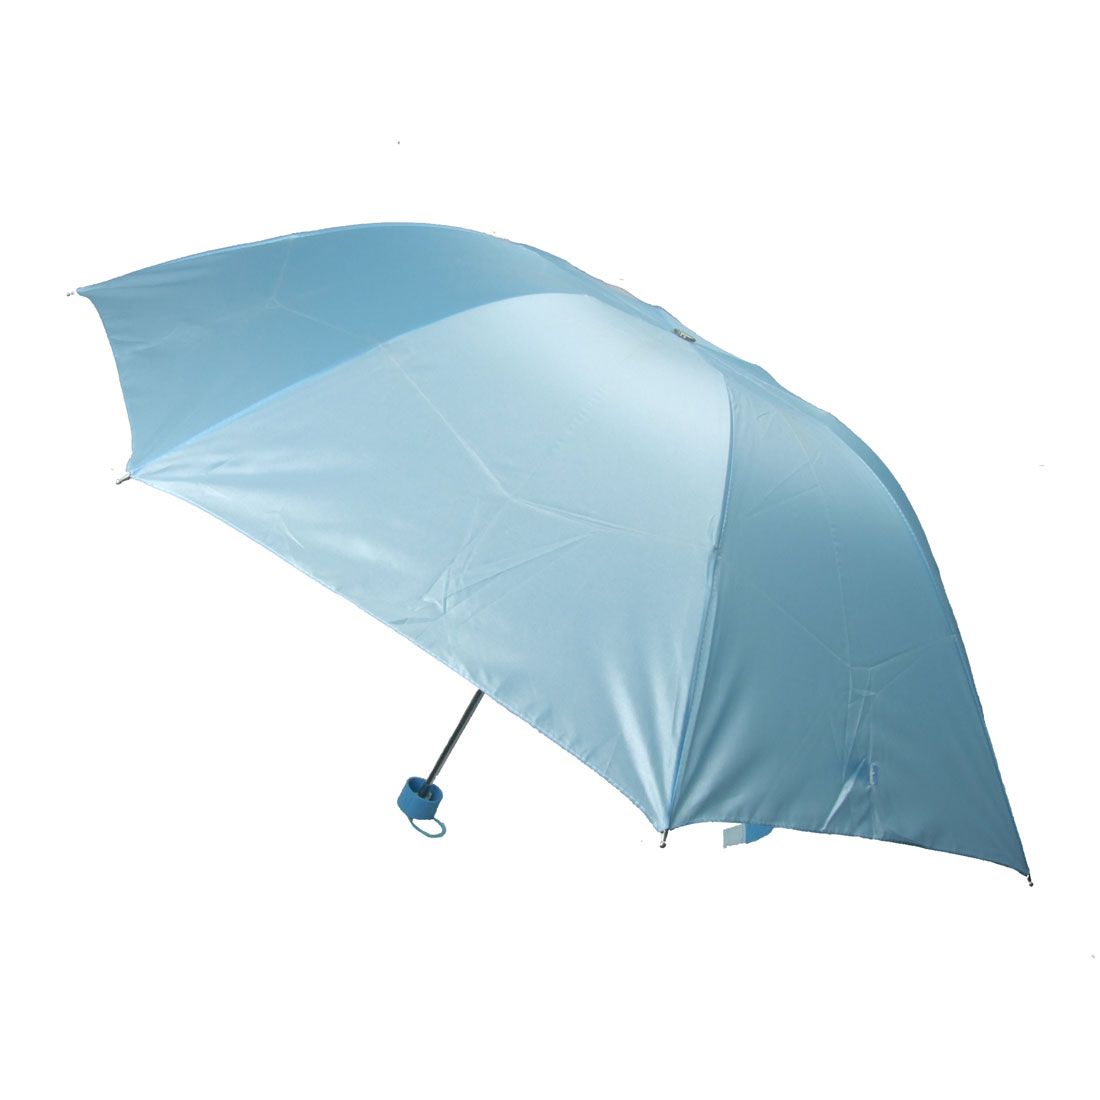 Lady's Flower Pattern Blue Folding Canopy Sun Rain Umbrella